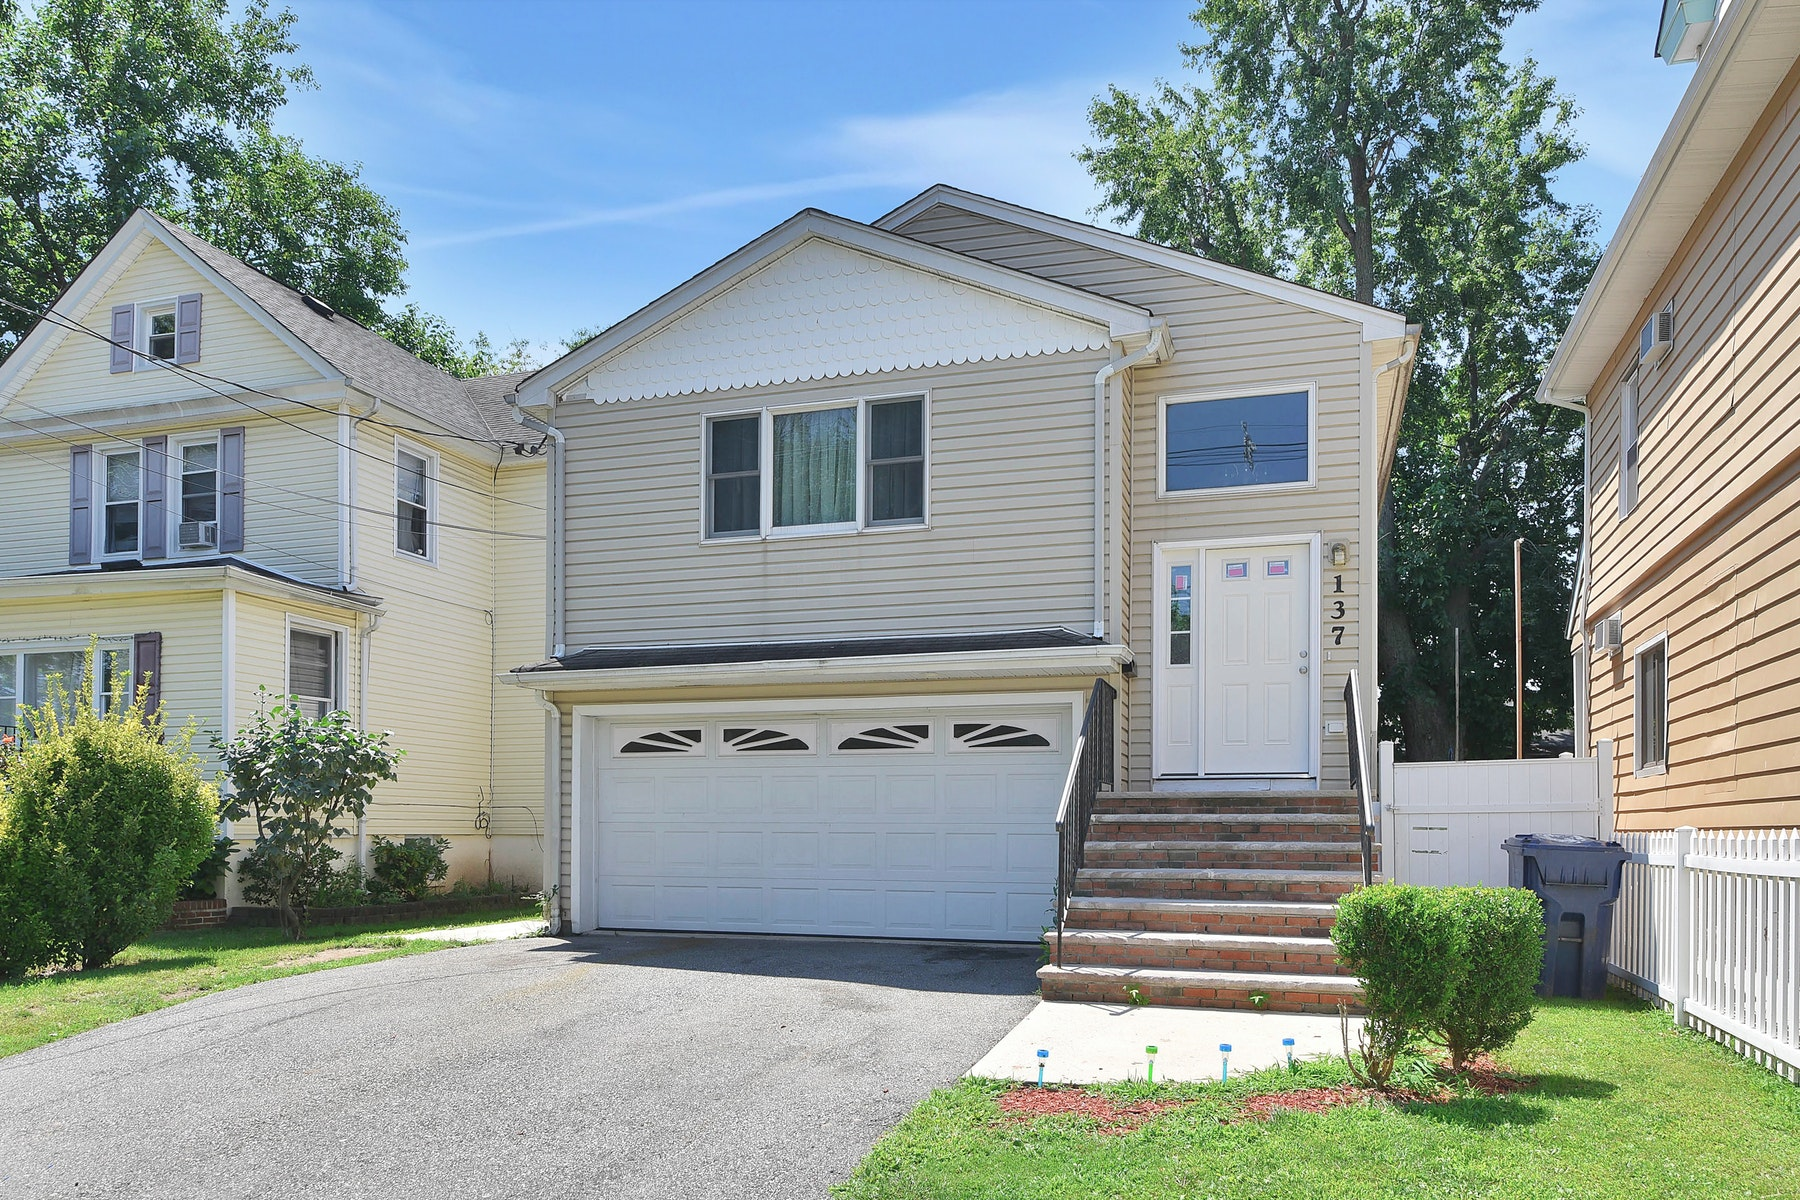 Multi-Family Homes for Sale at Roomy Two Family Home 137 Berry Street, Hackensack, New Jersey 07601 United States